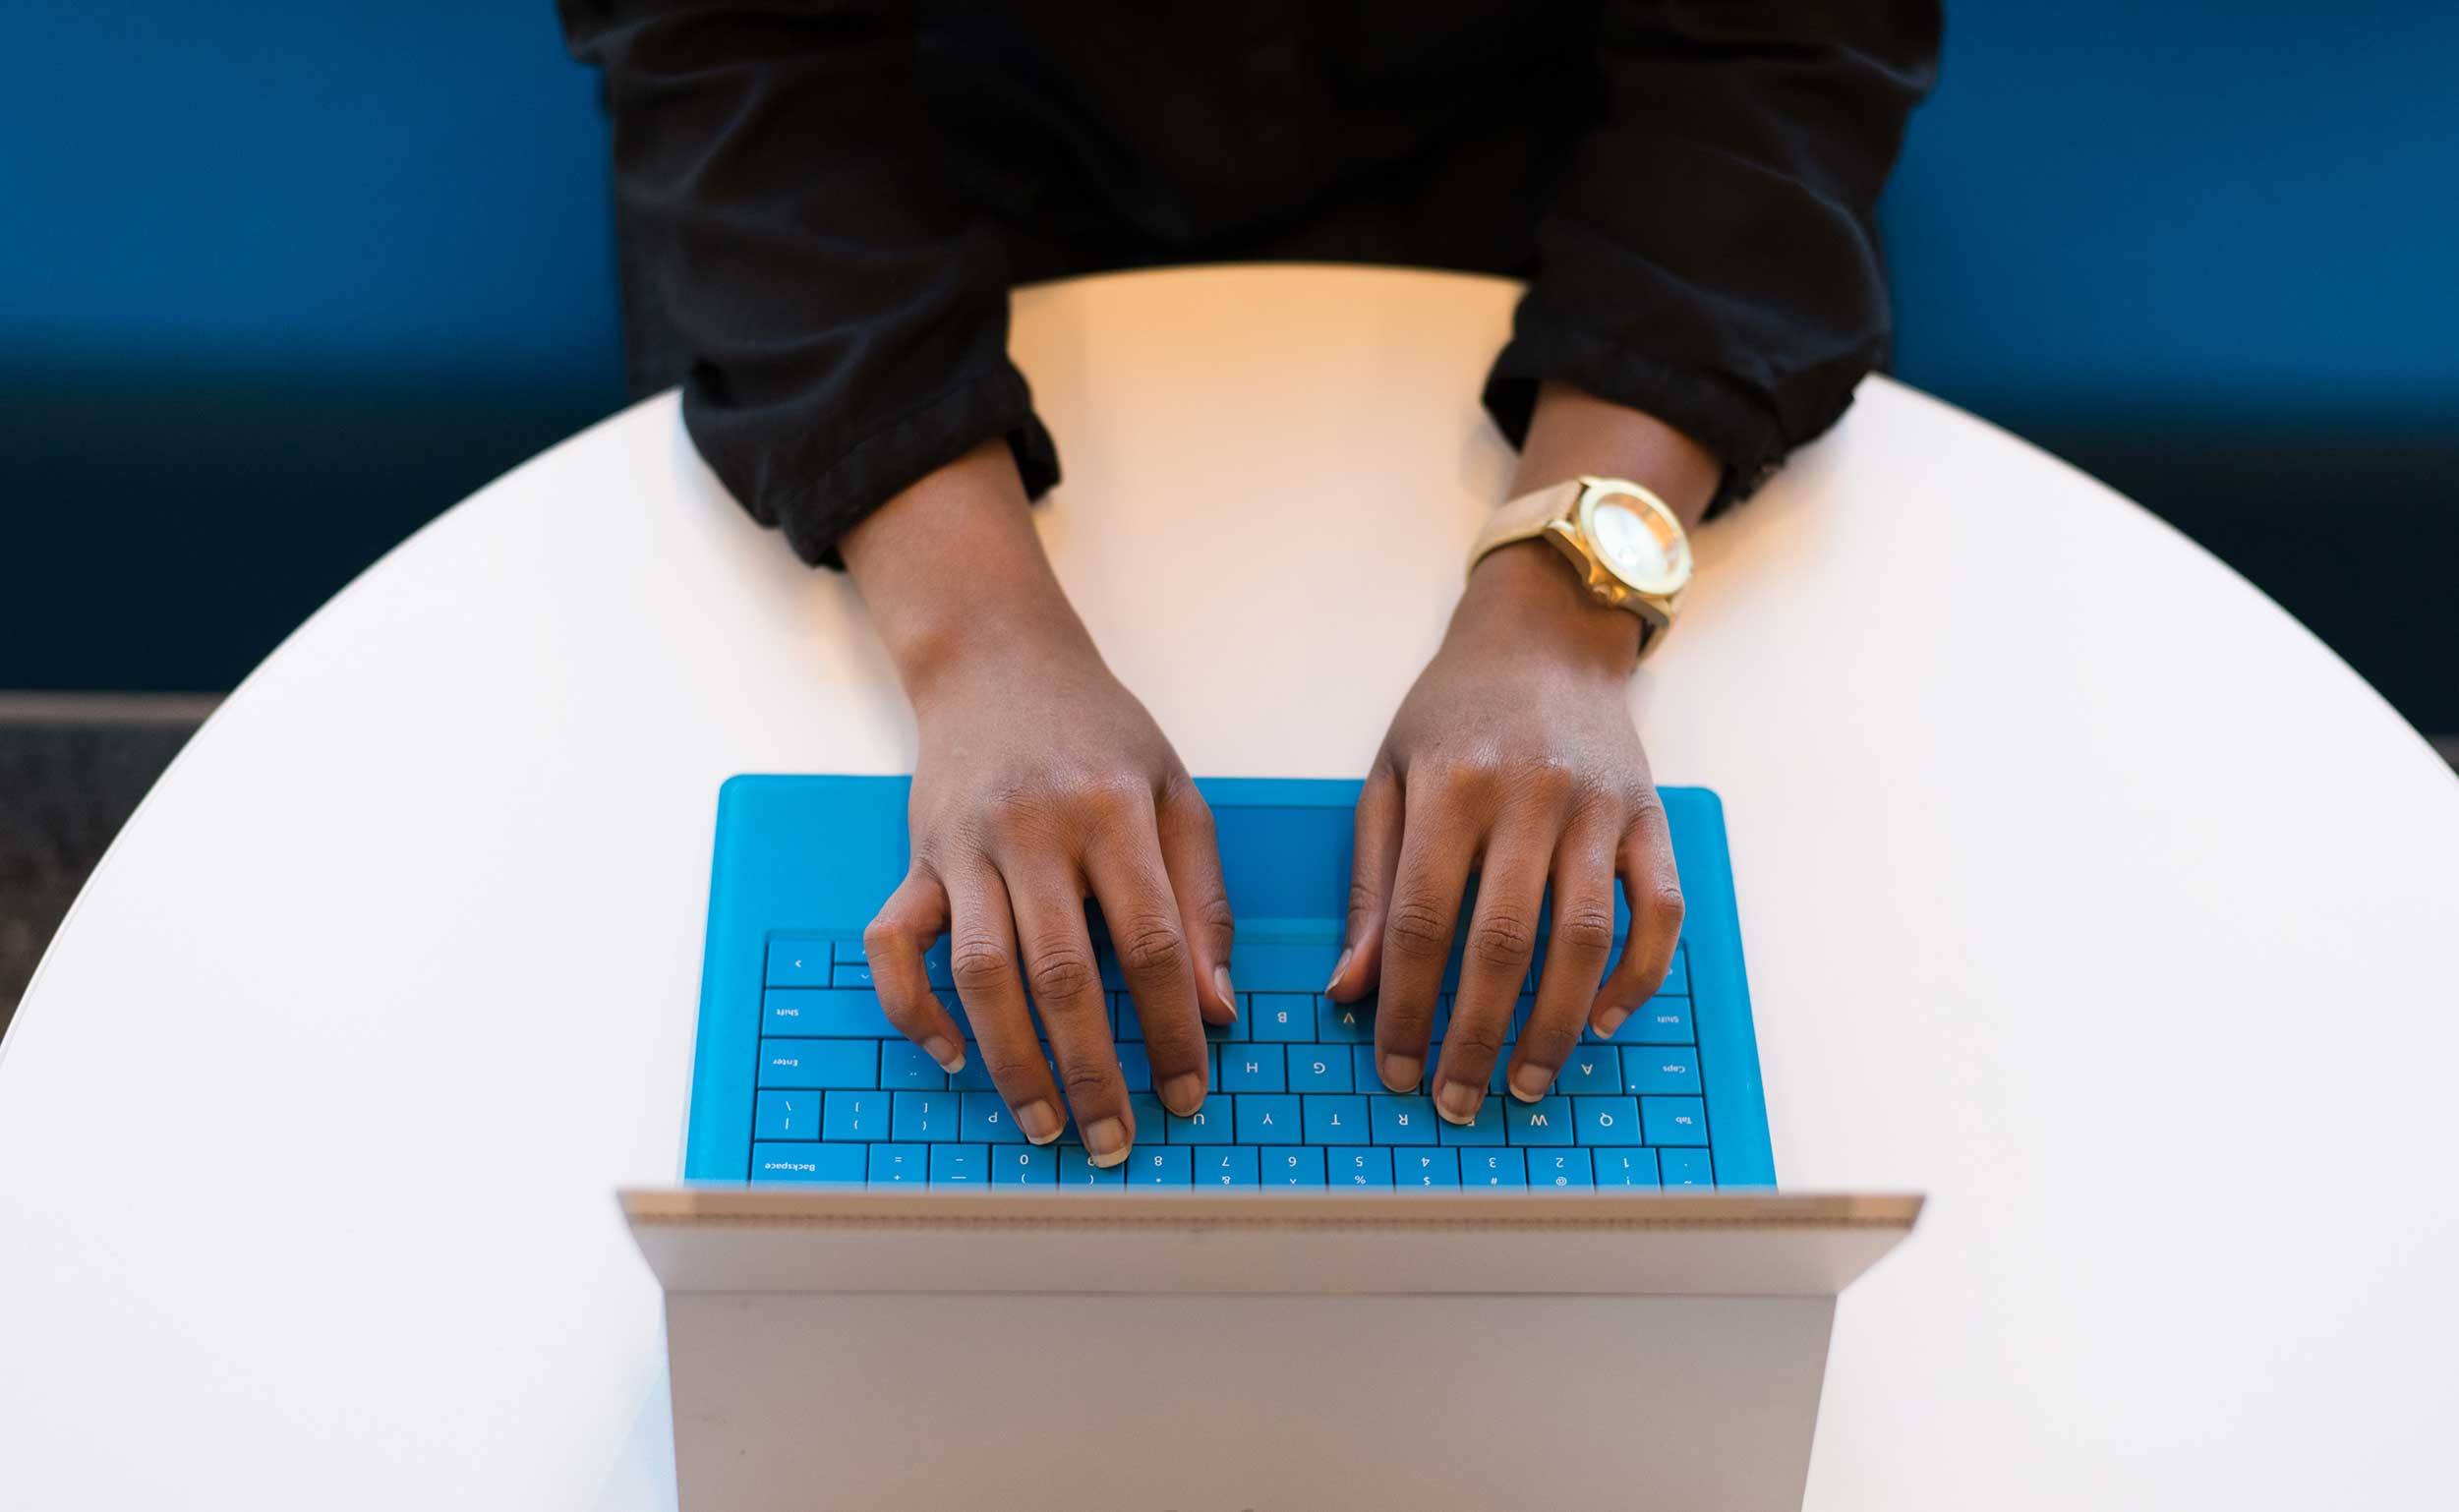 top-down view of a black woman's hands typing on a laptop